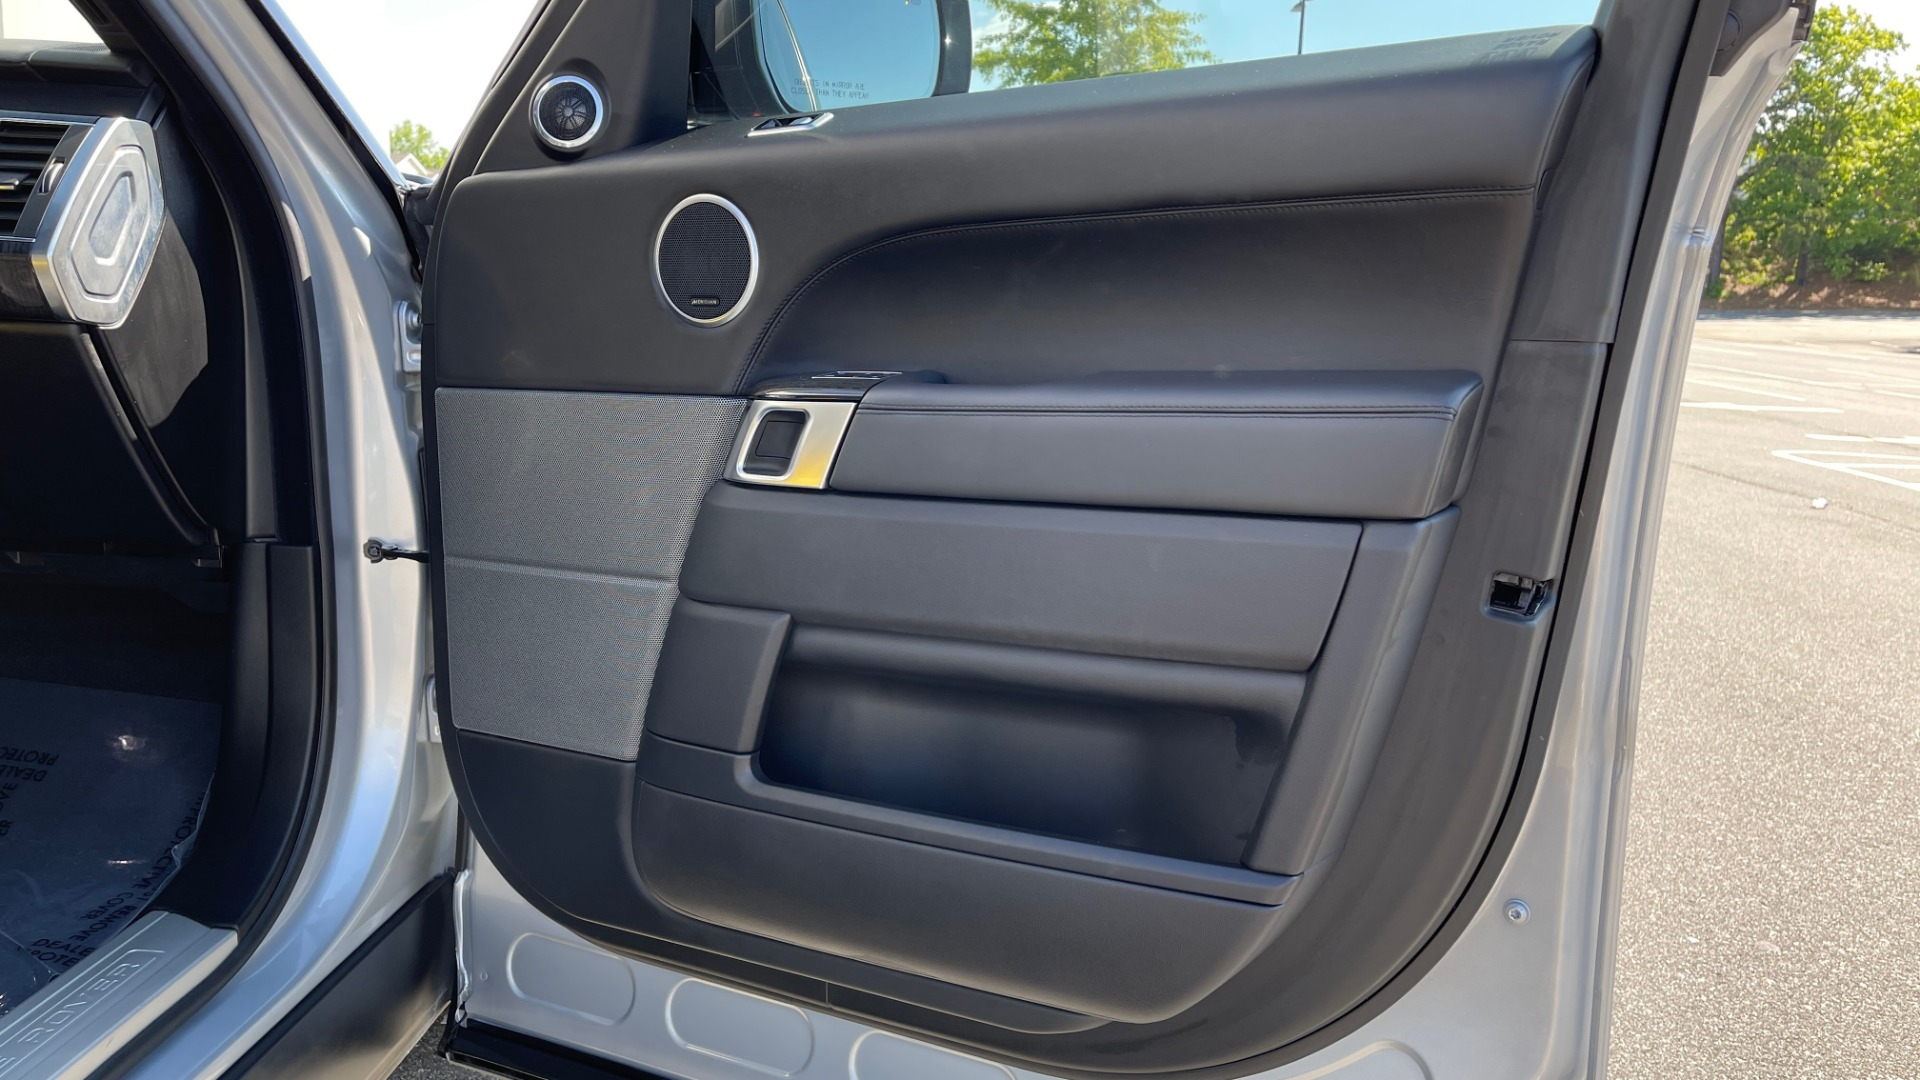 Used 2019 Land Rover RANGE ROVER SPORT HSE DYNAMIC / 3.0L SC V6 / 8-SPD / APPLE / NAV / SUNROOF / REARVIEW for sale Sold at Formula Imports in Charlotte NC 28227 82